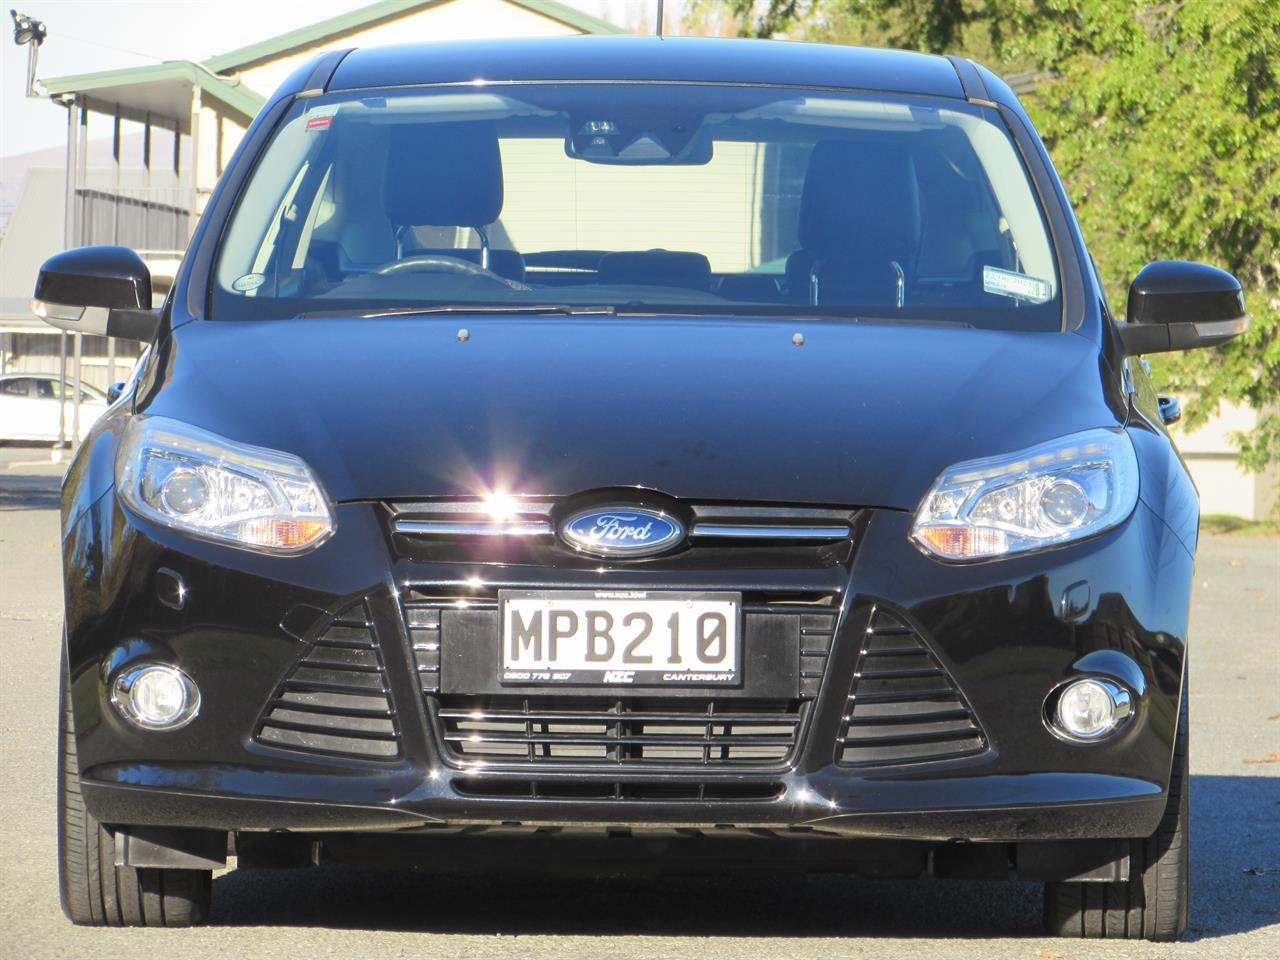 image-1, 2013 Ford Focus at Christchurch